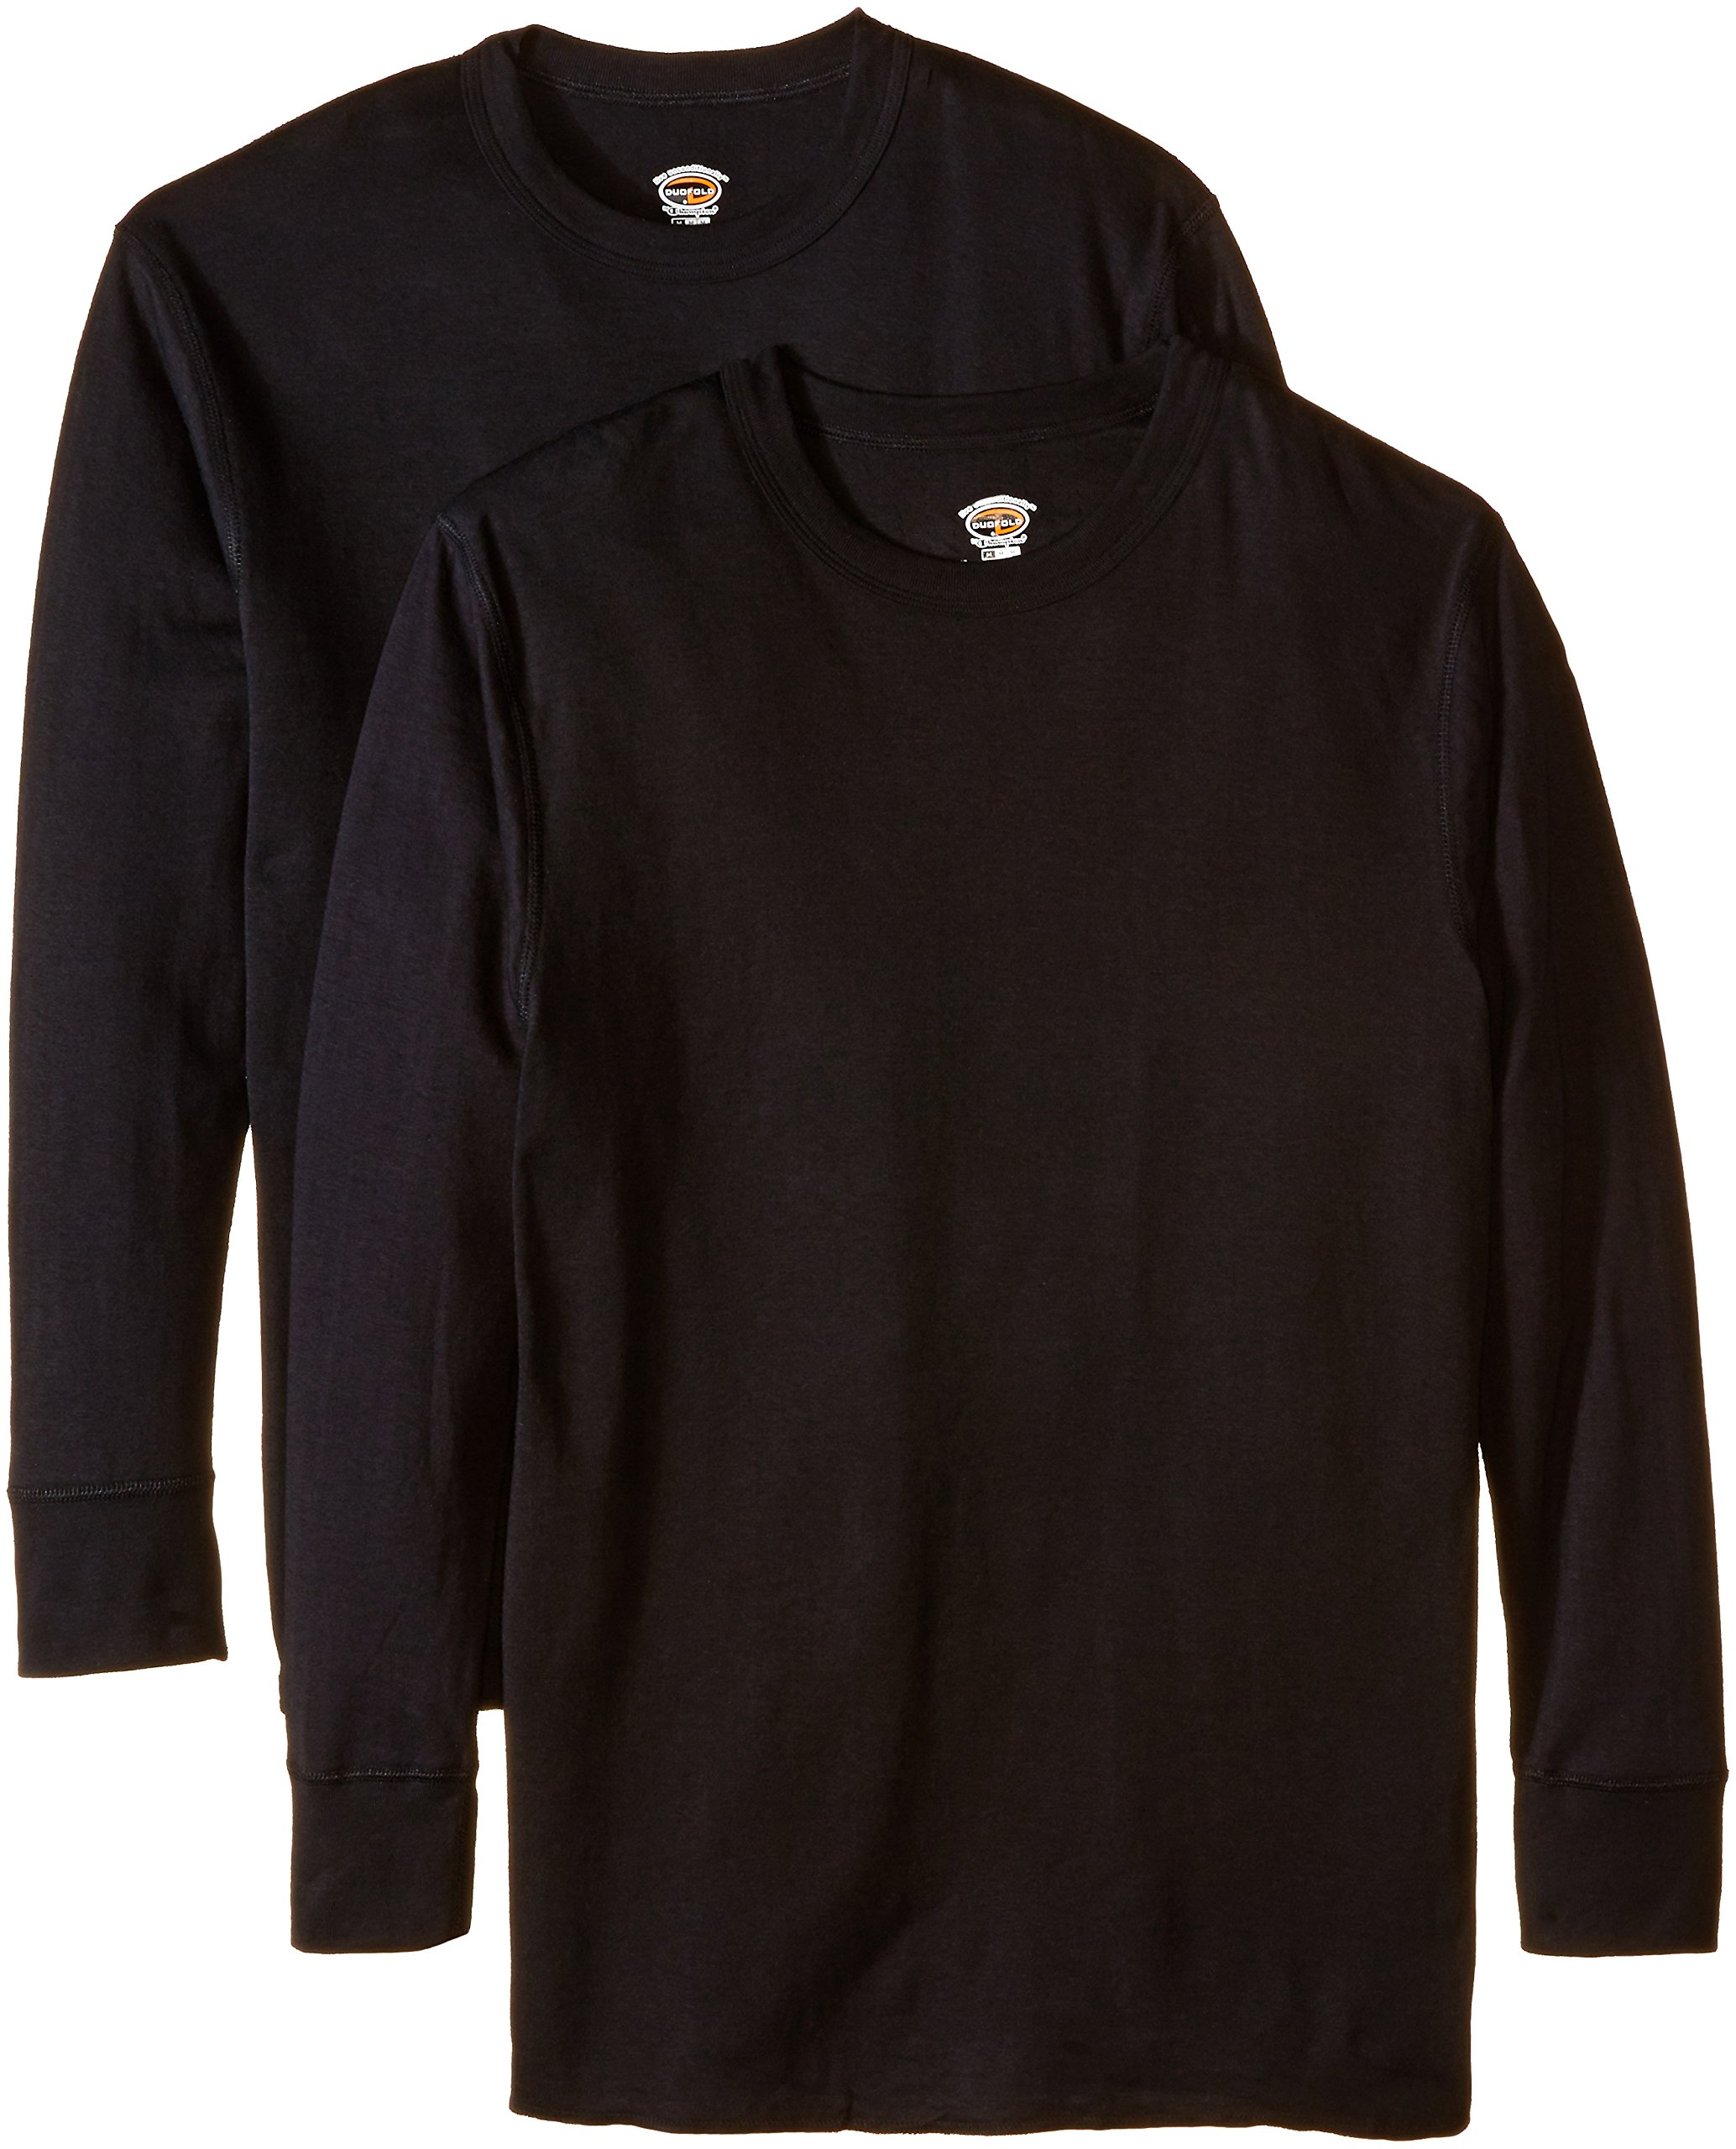 Duofold Men's Mid Weight Wicking Thermal Shirt (Pack of 2), Black, Small